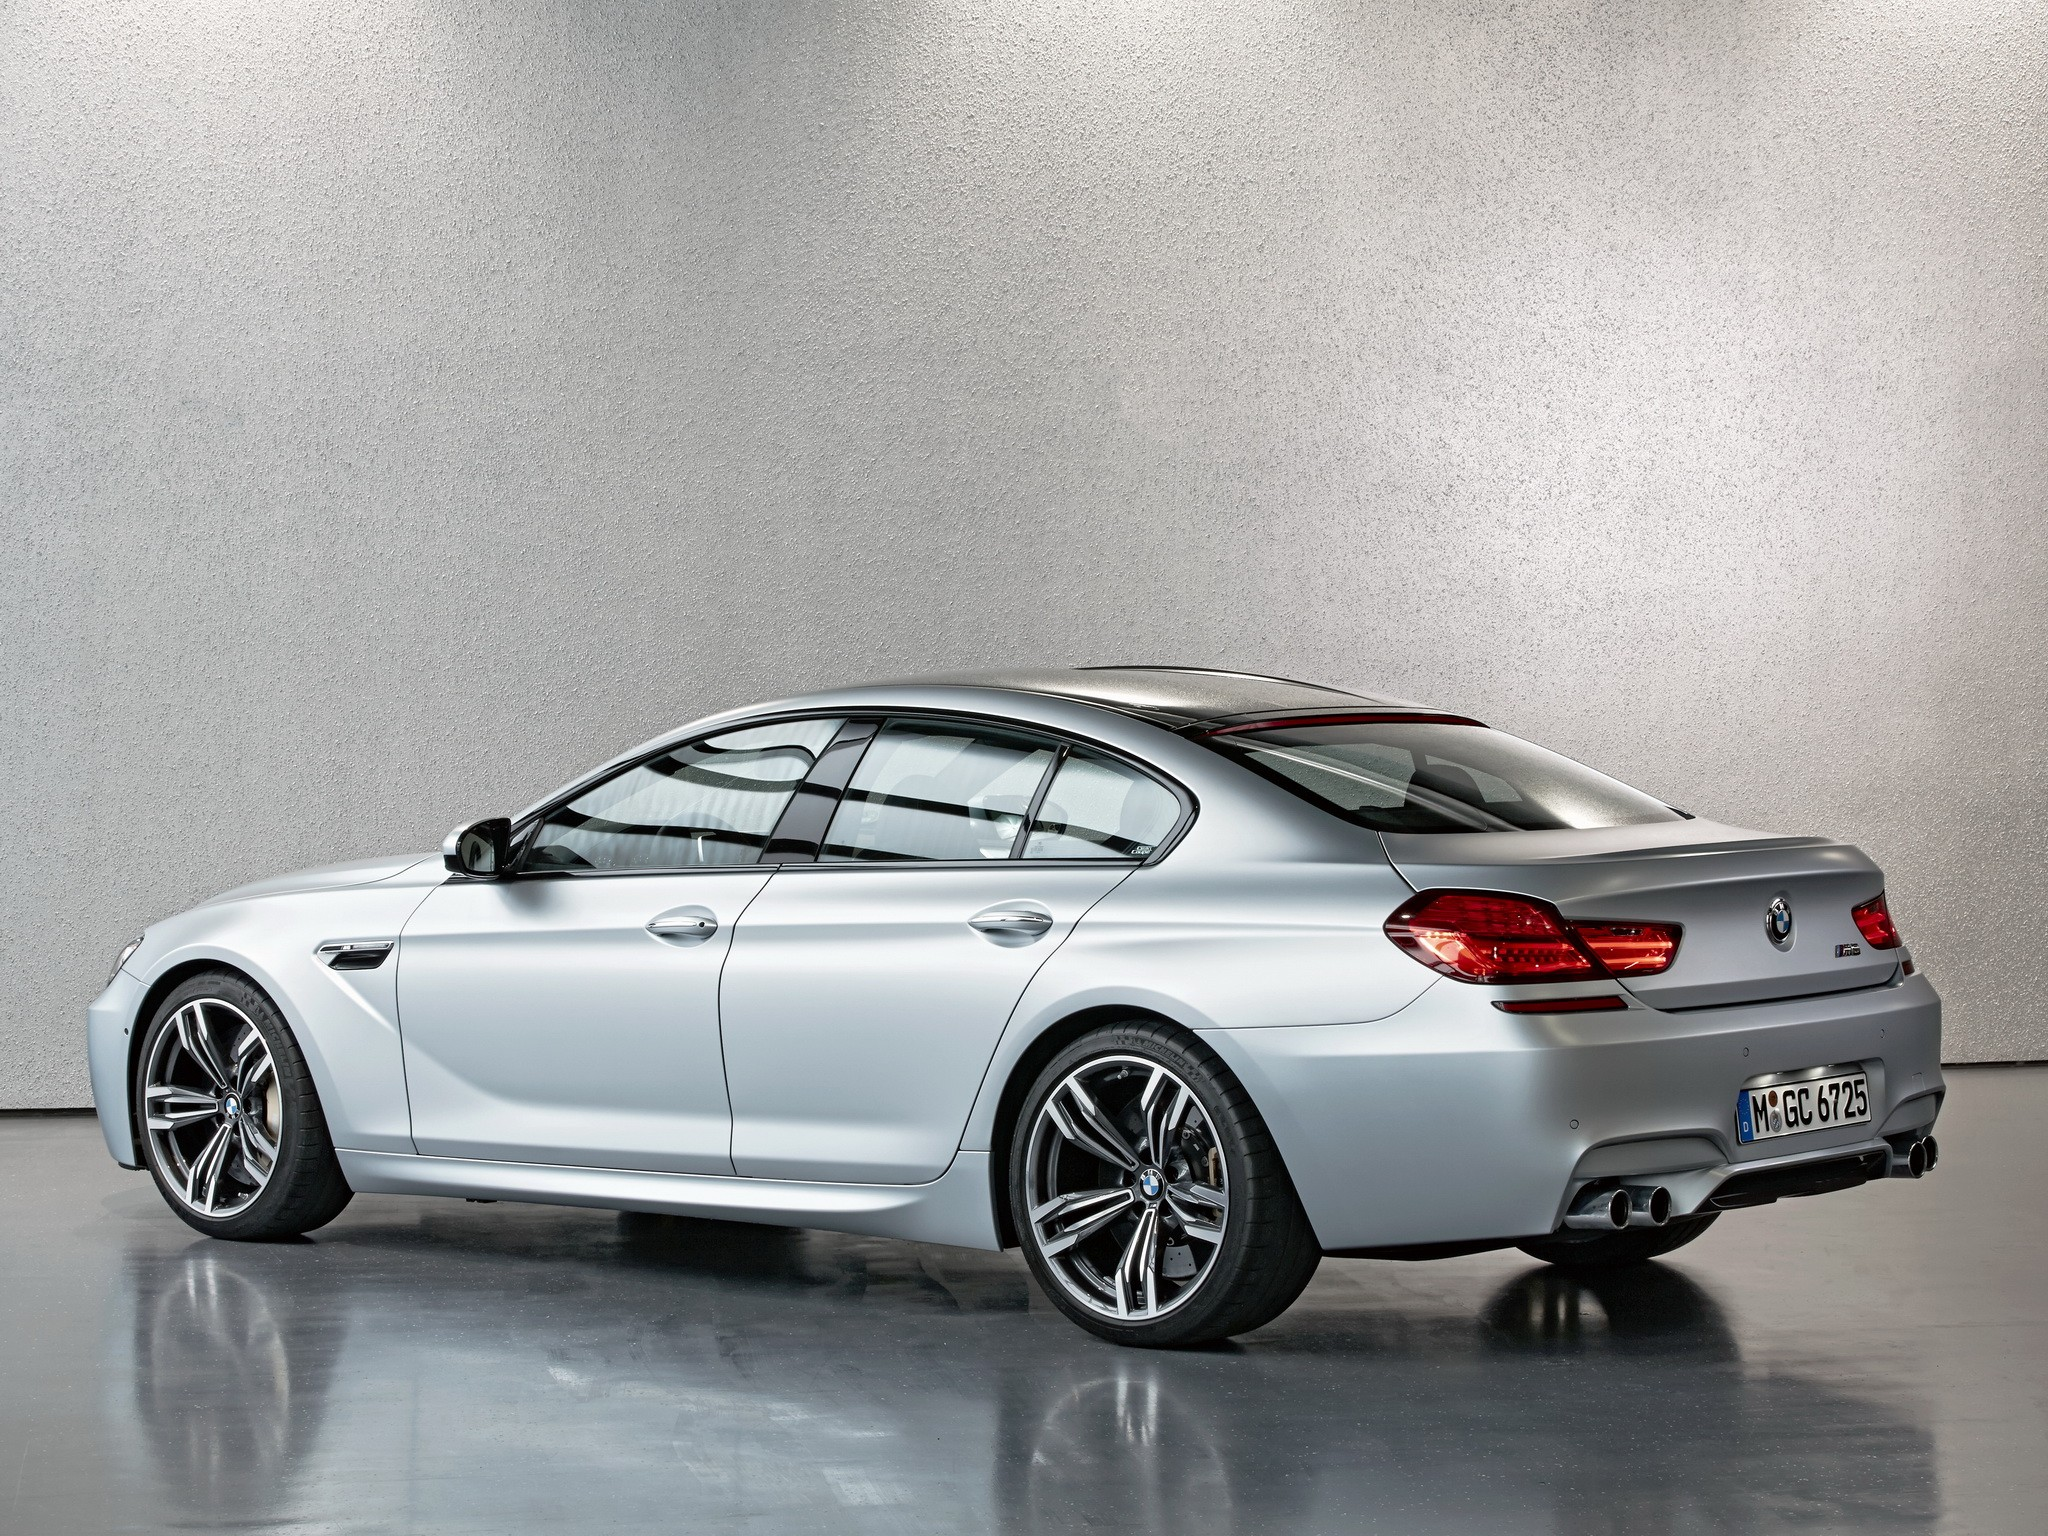 bmw m6 gran coupe f06 specs 2013 2014 2015 2016 2017 2018 autoevolution. Black Bedroom Furniture Sets. Home Design Ideas